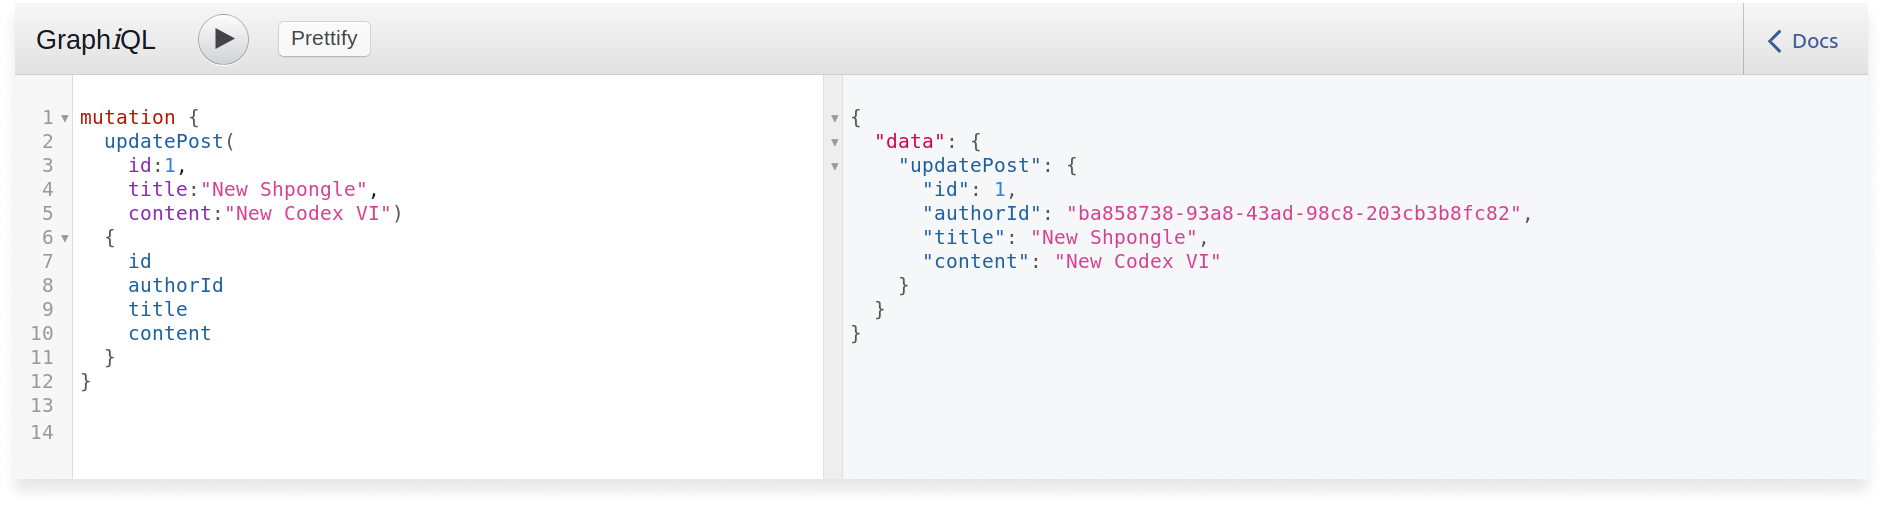 Authorized GraphQL query to update a post in a Scala GraphQL application. The post is updated because access token was provided.